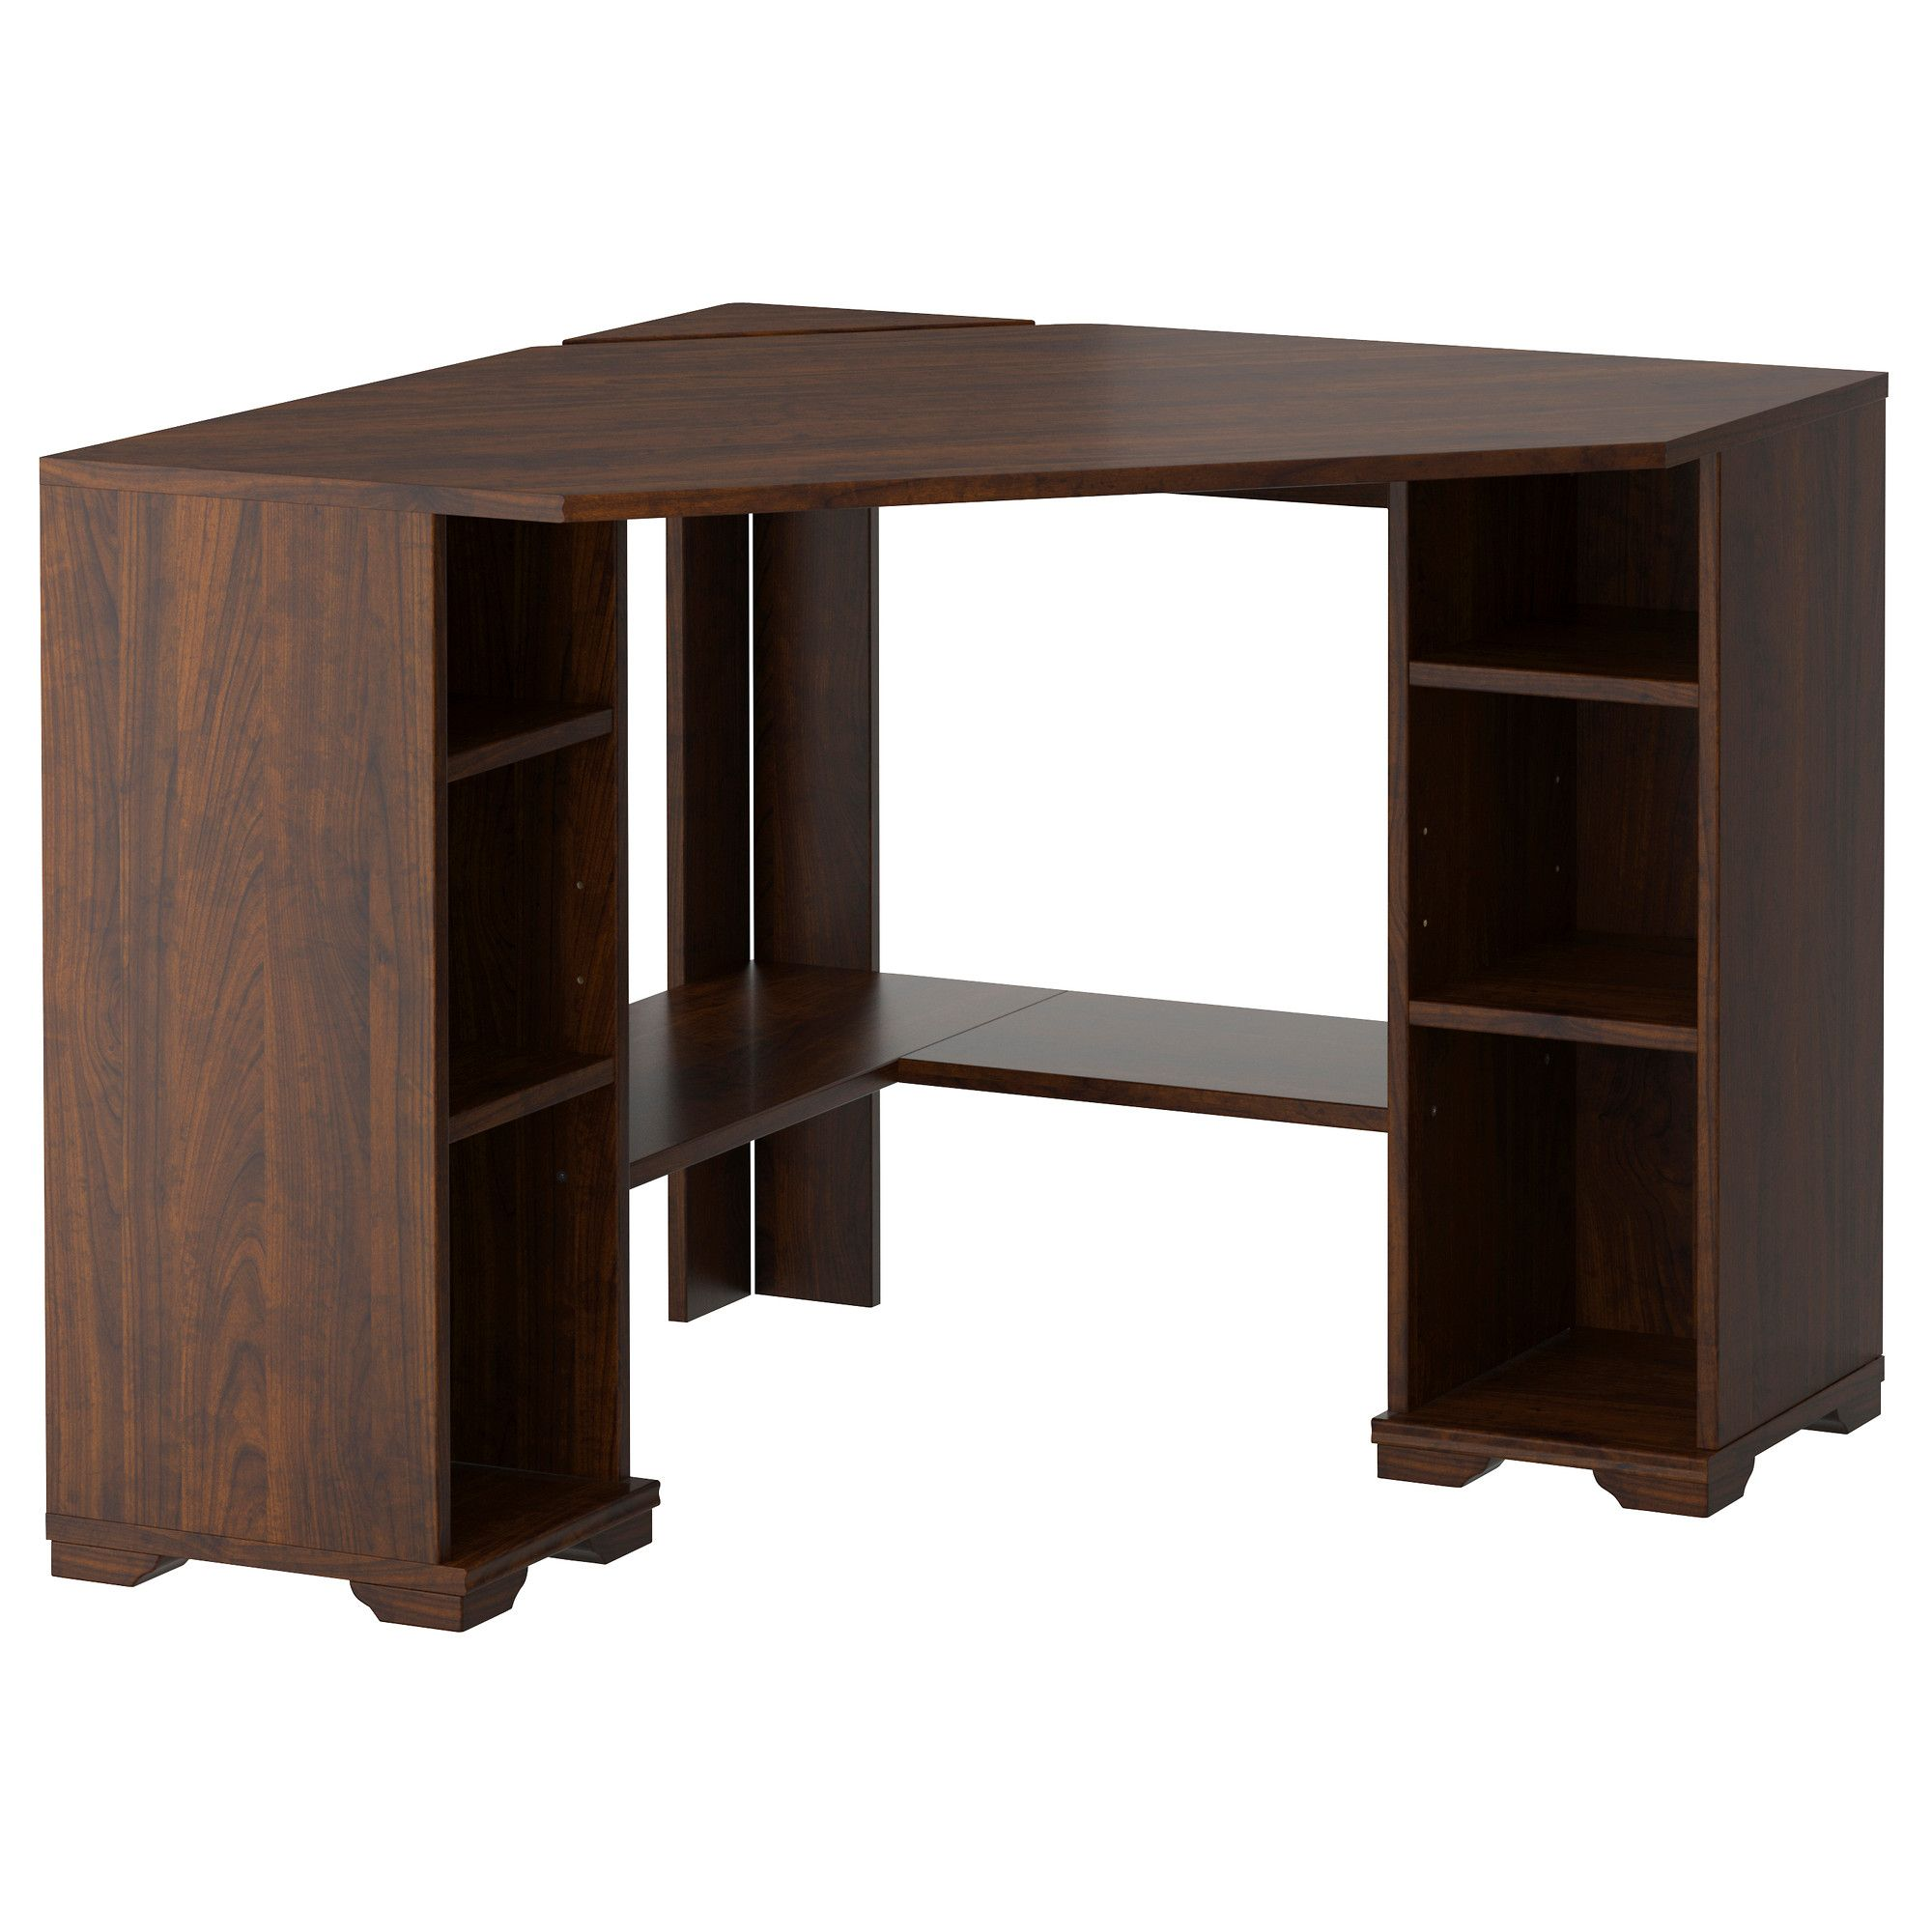 Design Ikea Corner Desk corner desk ikea not my favorite but it would work for the